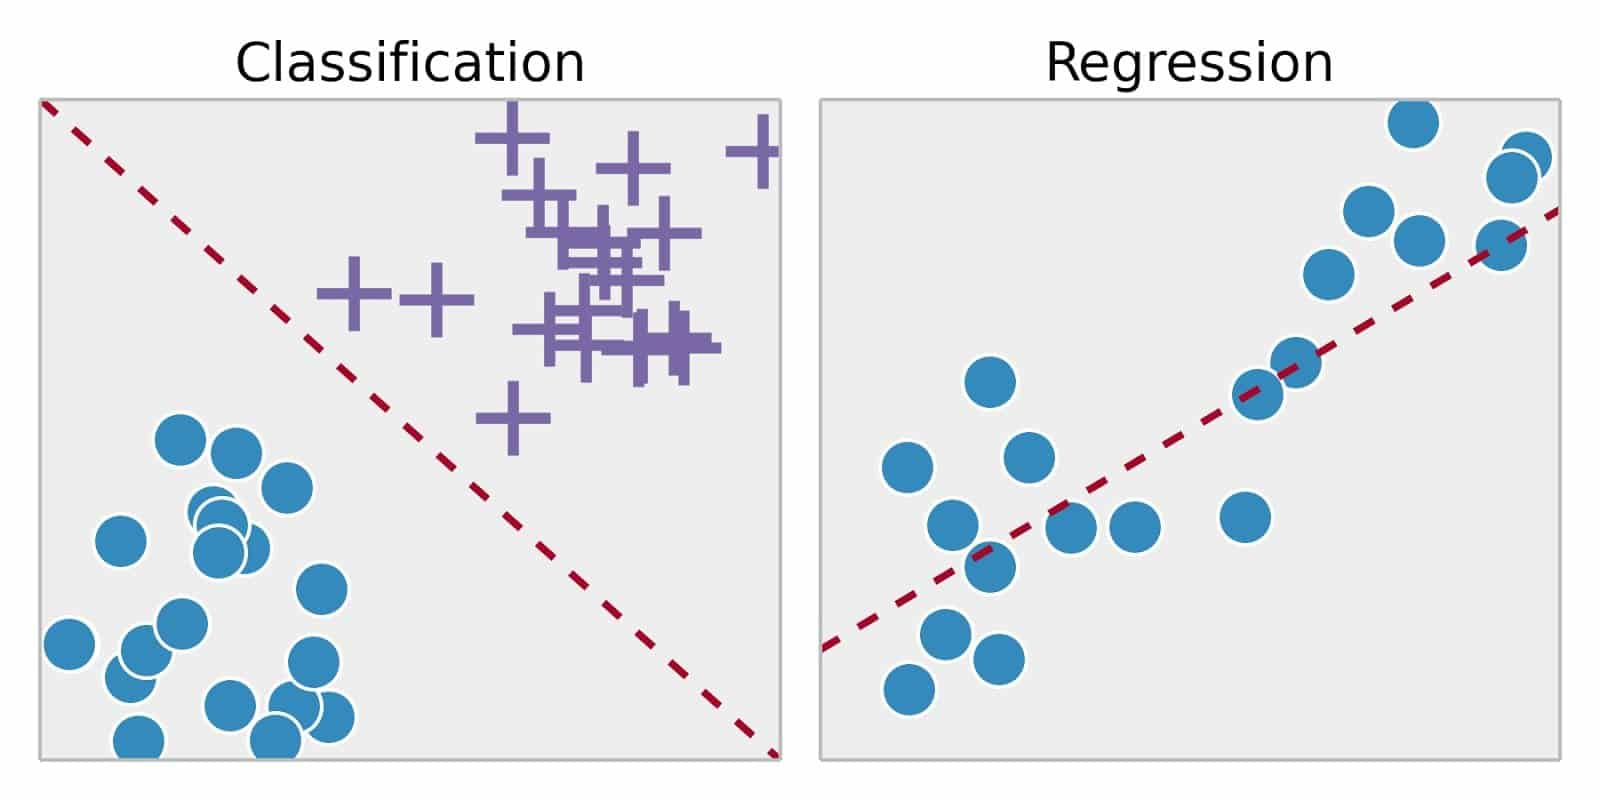 Correlation Between Classification and Regression